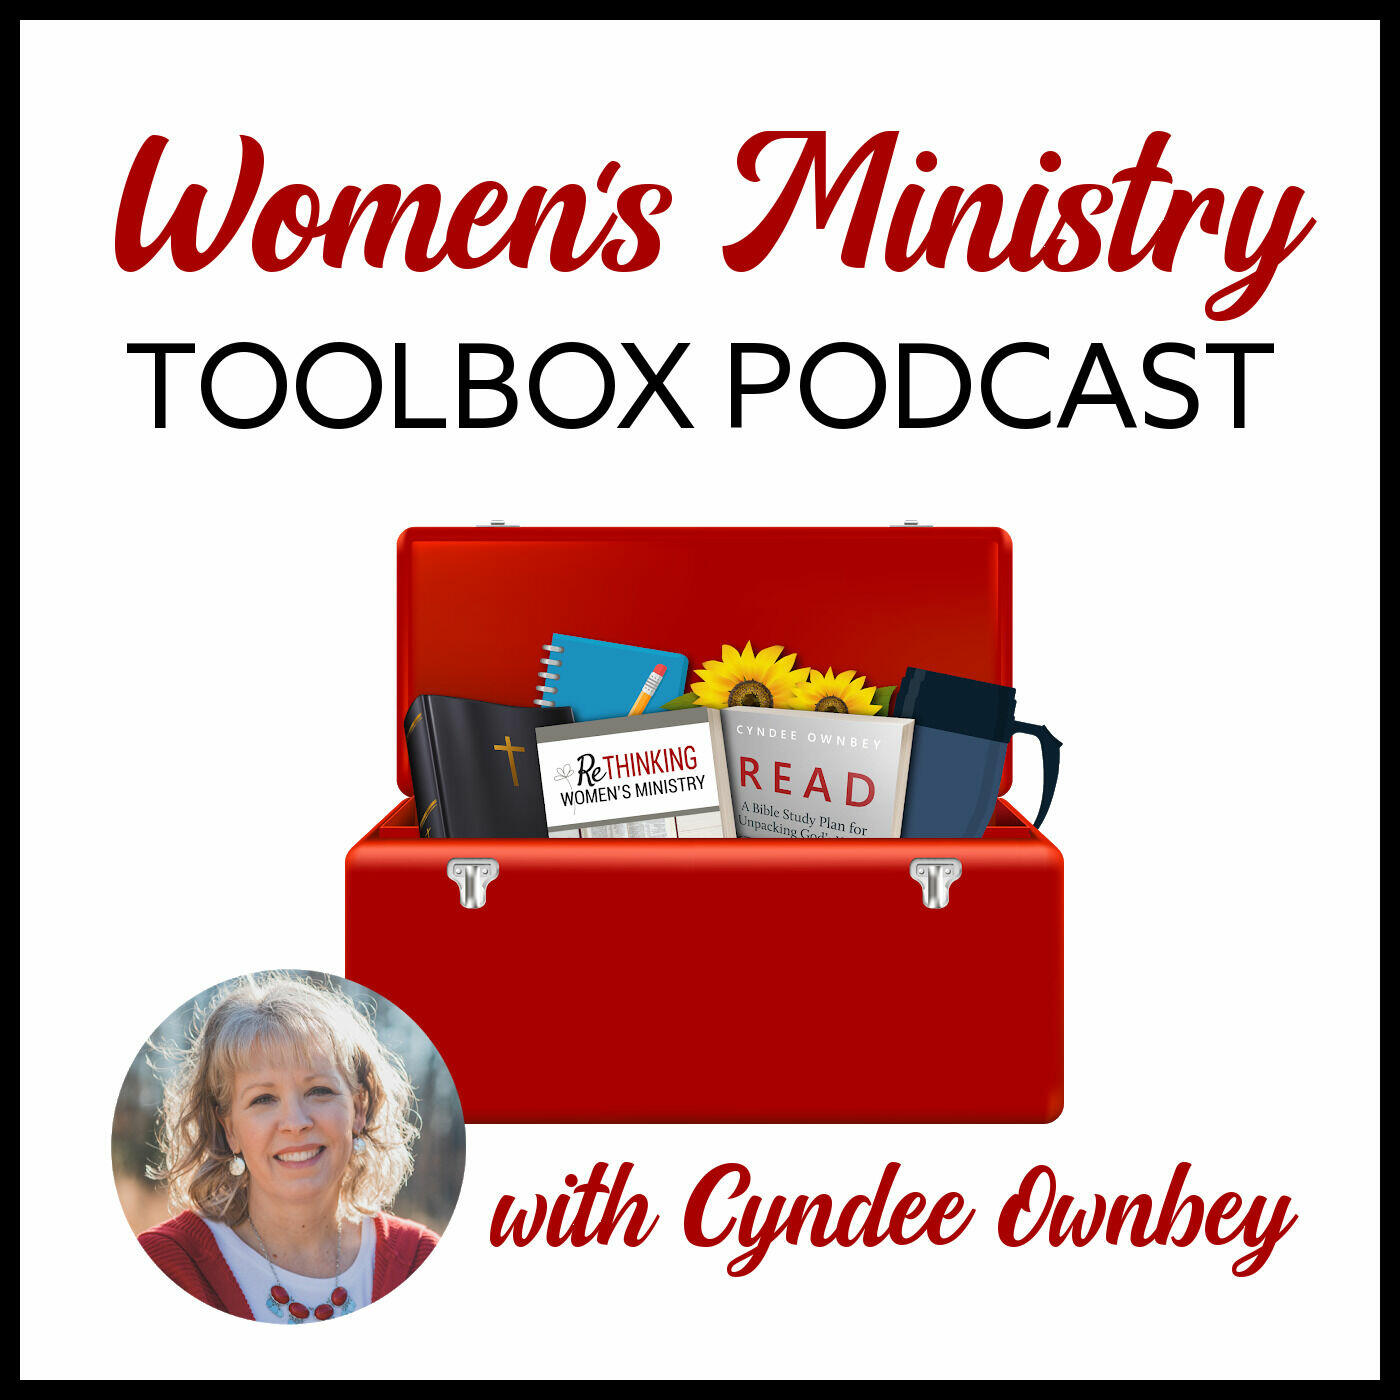 Women's Ministry Toolbox Podcast